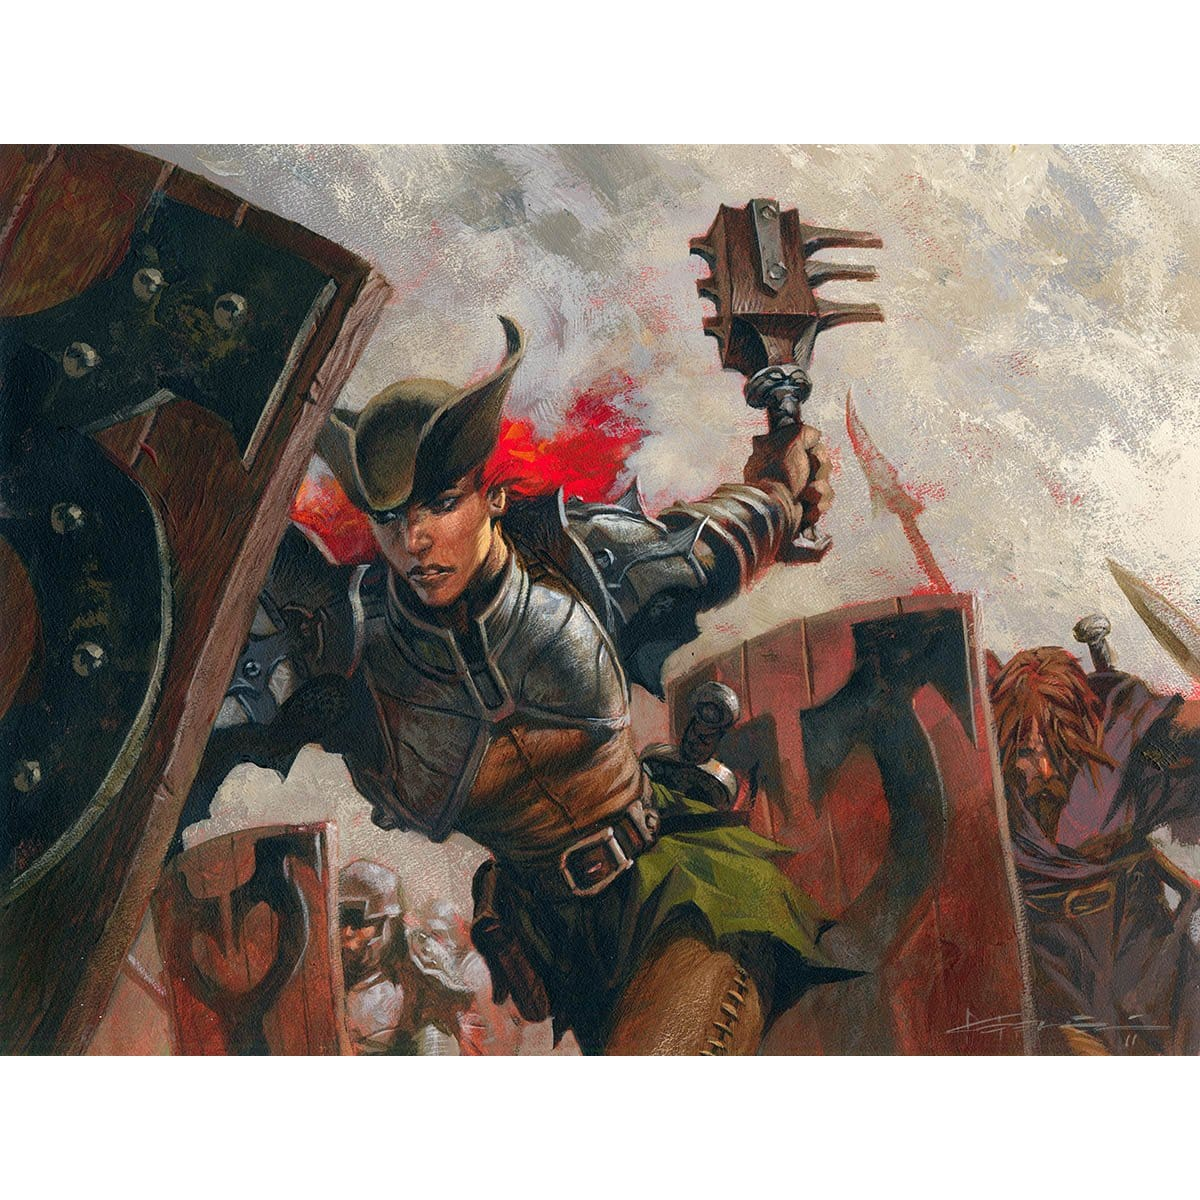 Kruin Striker Print - Print - Original Magic Art - Accessories for Magic the Gathering and other card games